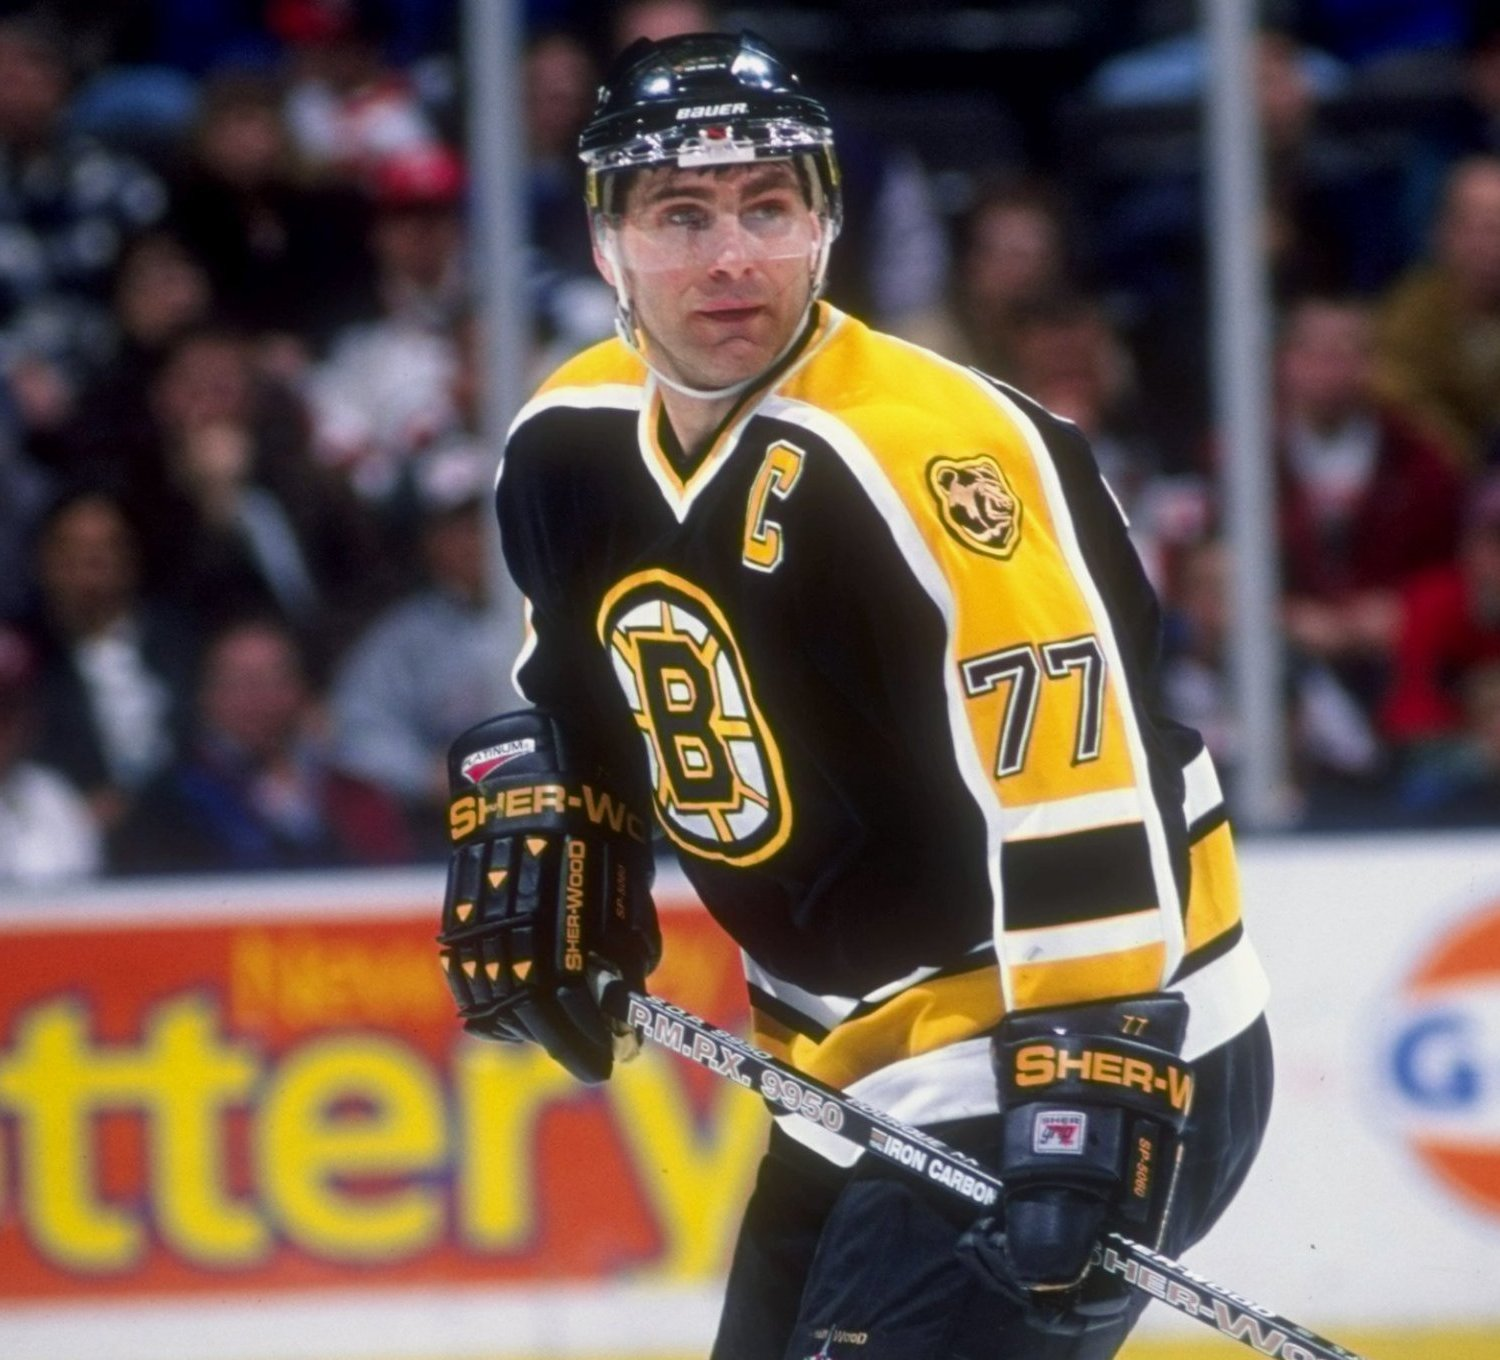 5. Ray Bourque, Boston Bruins (1979-2000), 1,506 Points